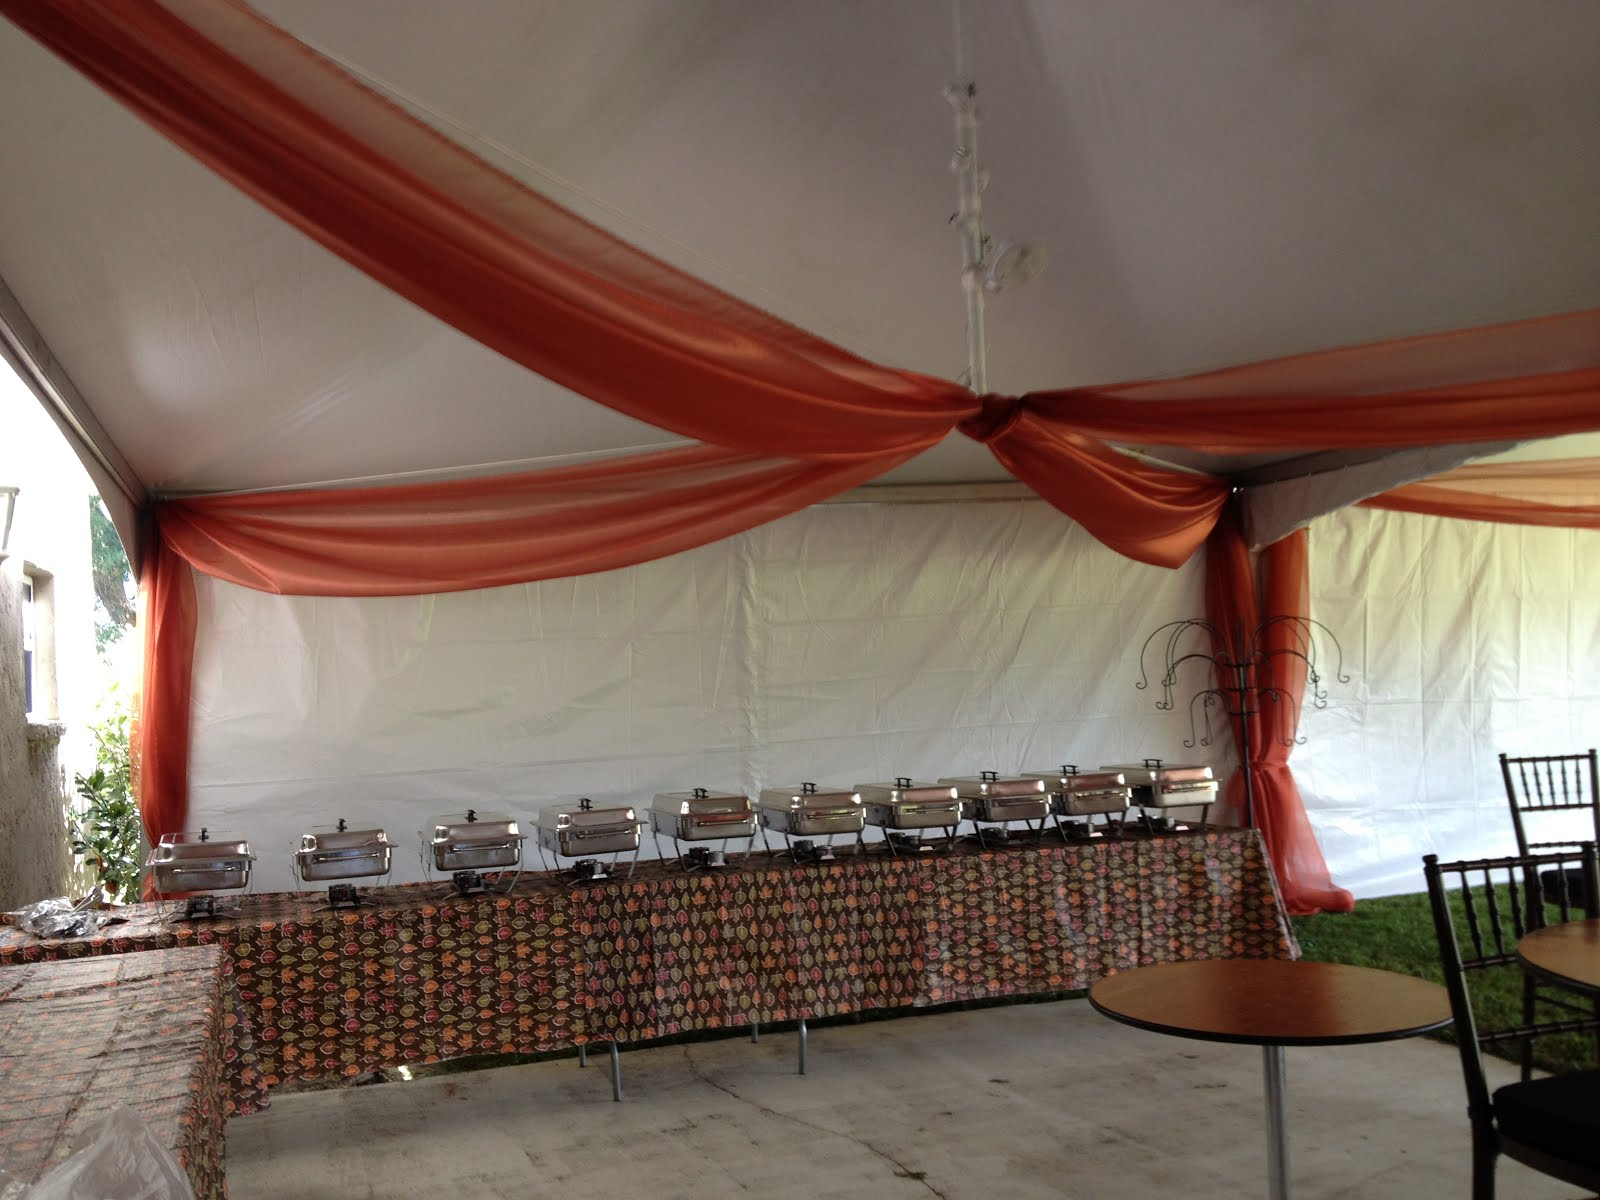 Food area Call Party People Celebration company 863-255-2025 or email partypeoplecc@msn.com to order custom organza swags for your celebration. & Party People Event Decorating Company: Rust Tent Organza Wedding